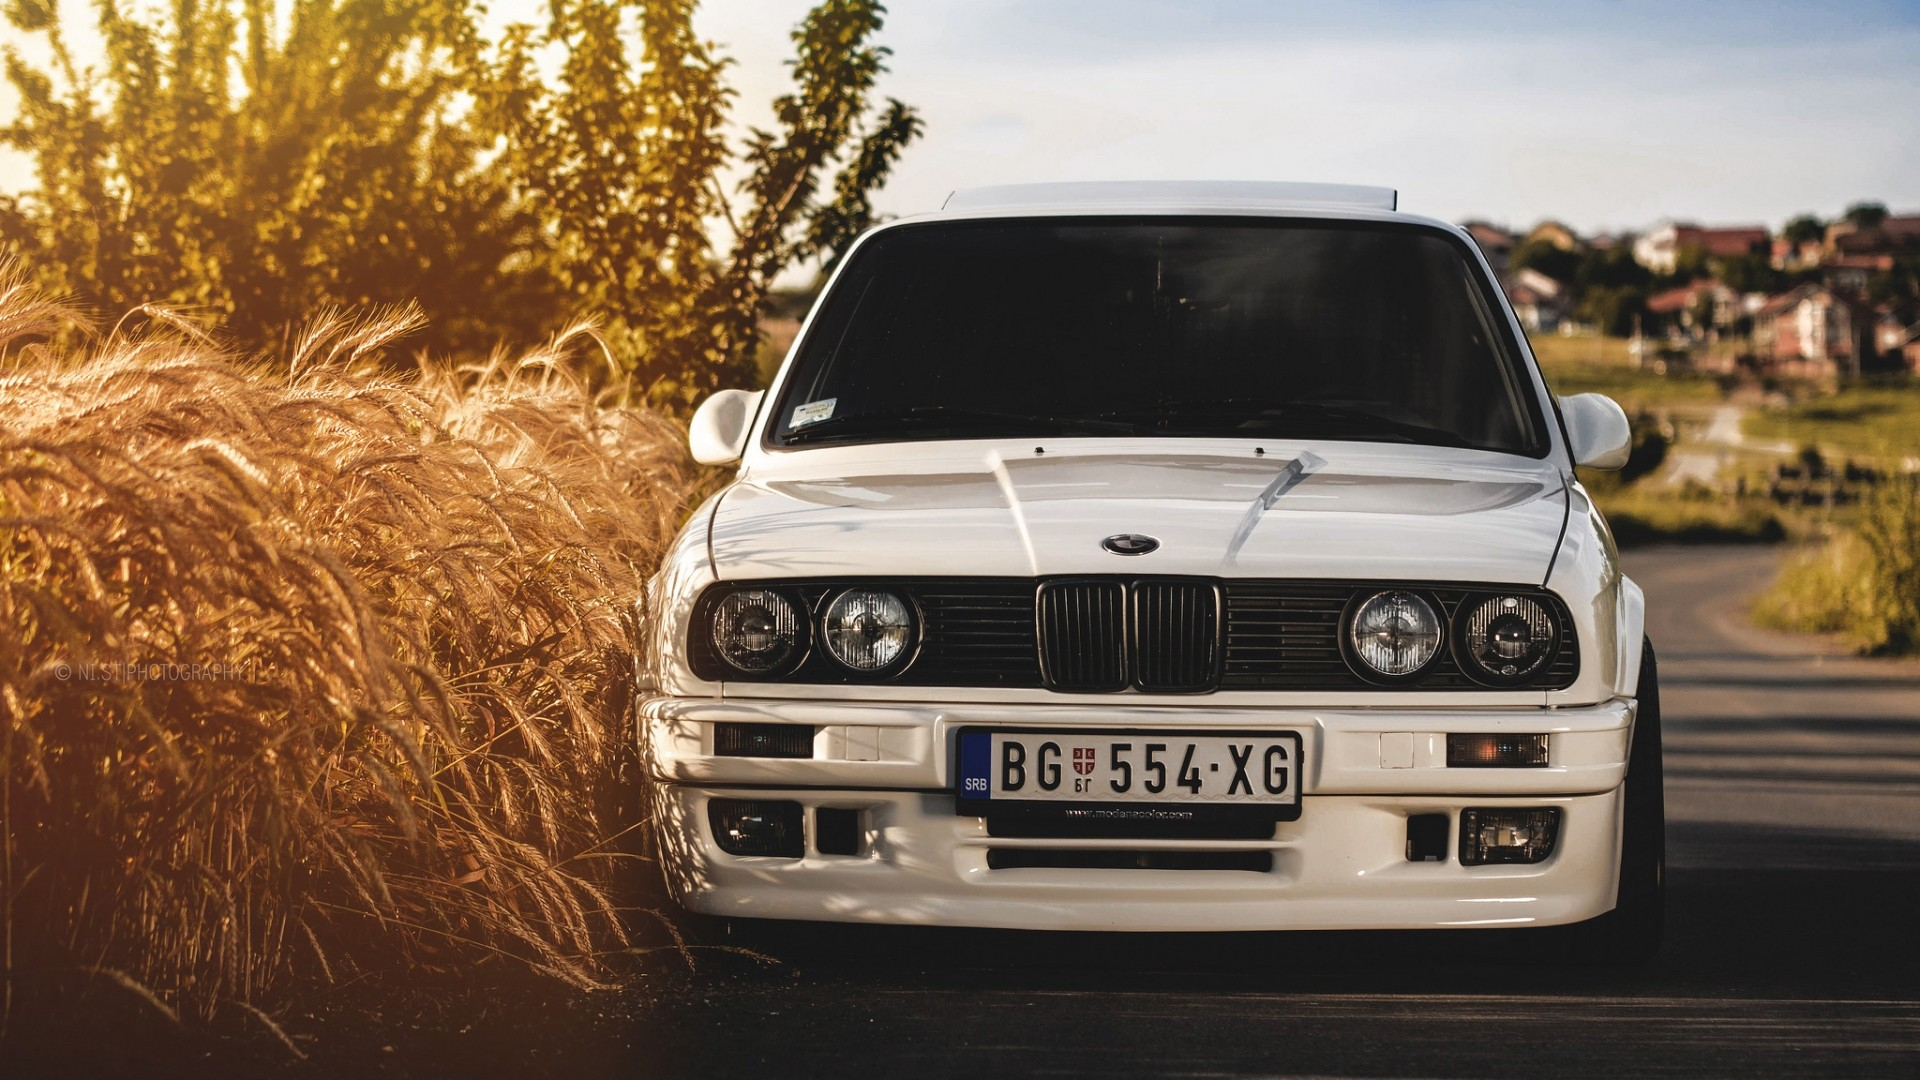 1920x1080 Preview wallpaper bmw, 325i, e30, white, auto